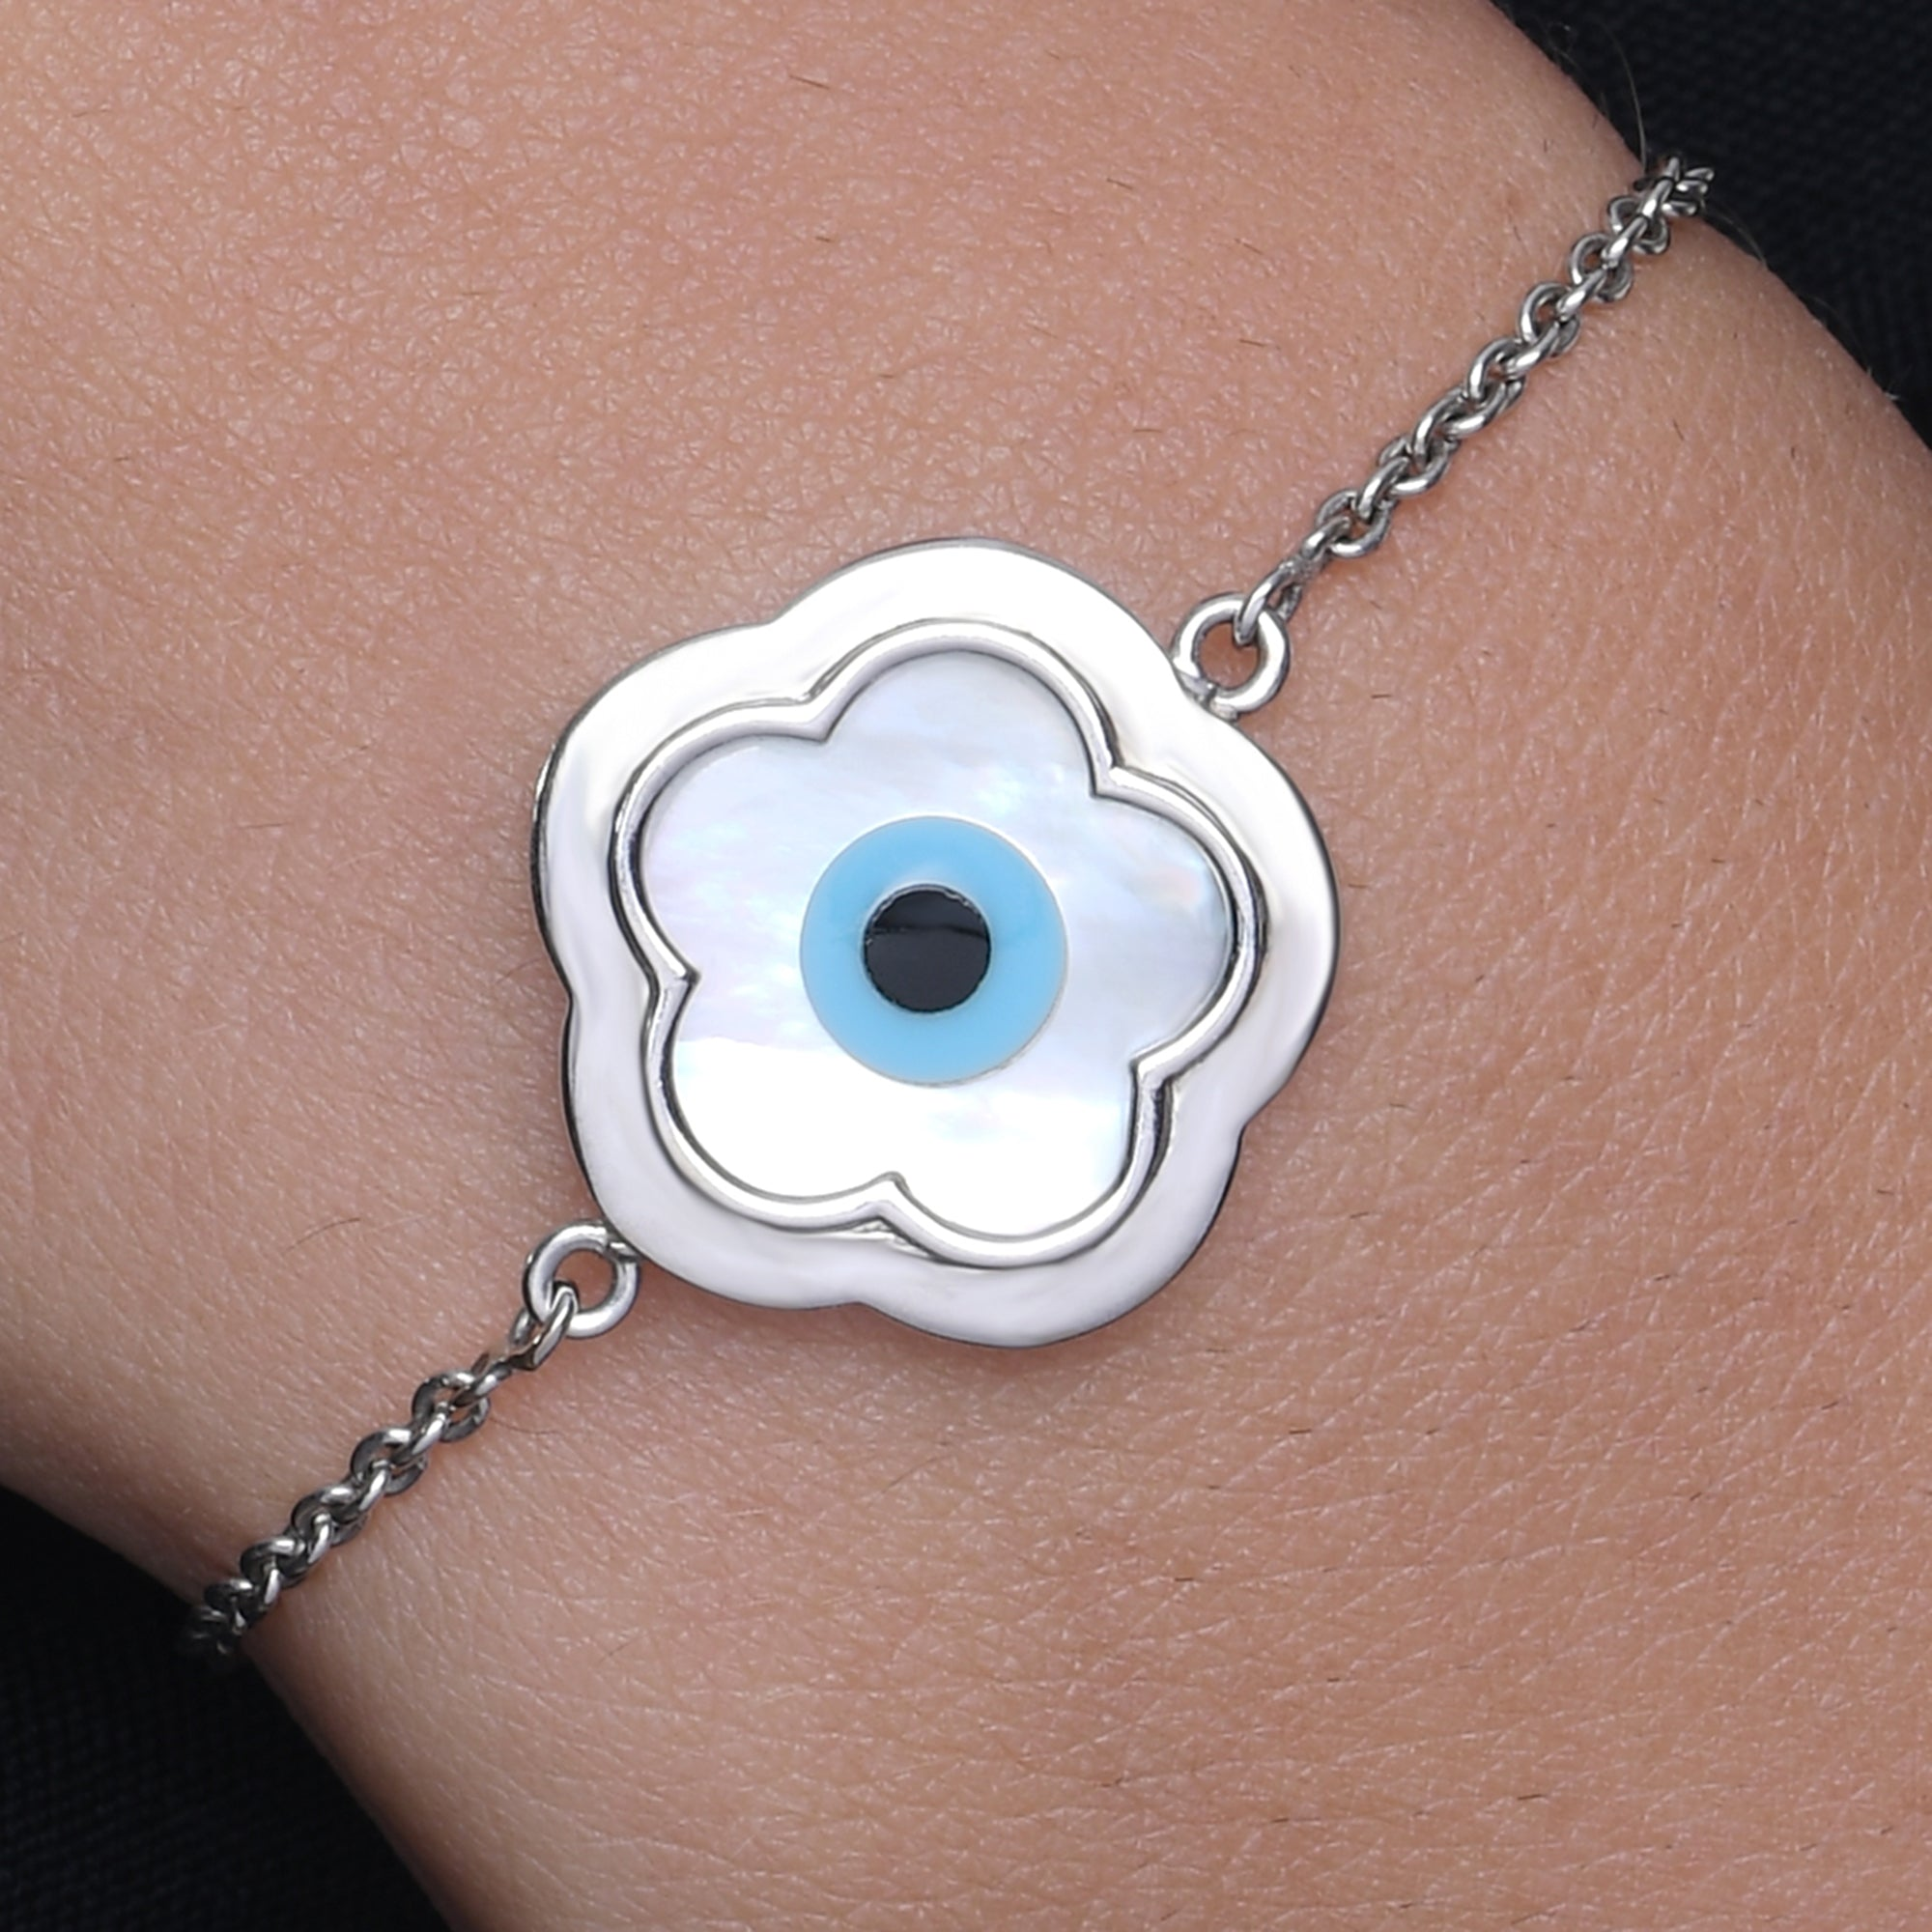 Small Flower Evil Eye Chain Bracelet